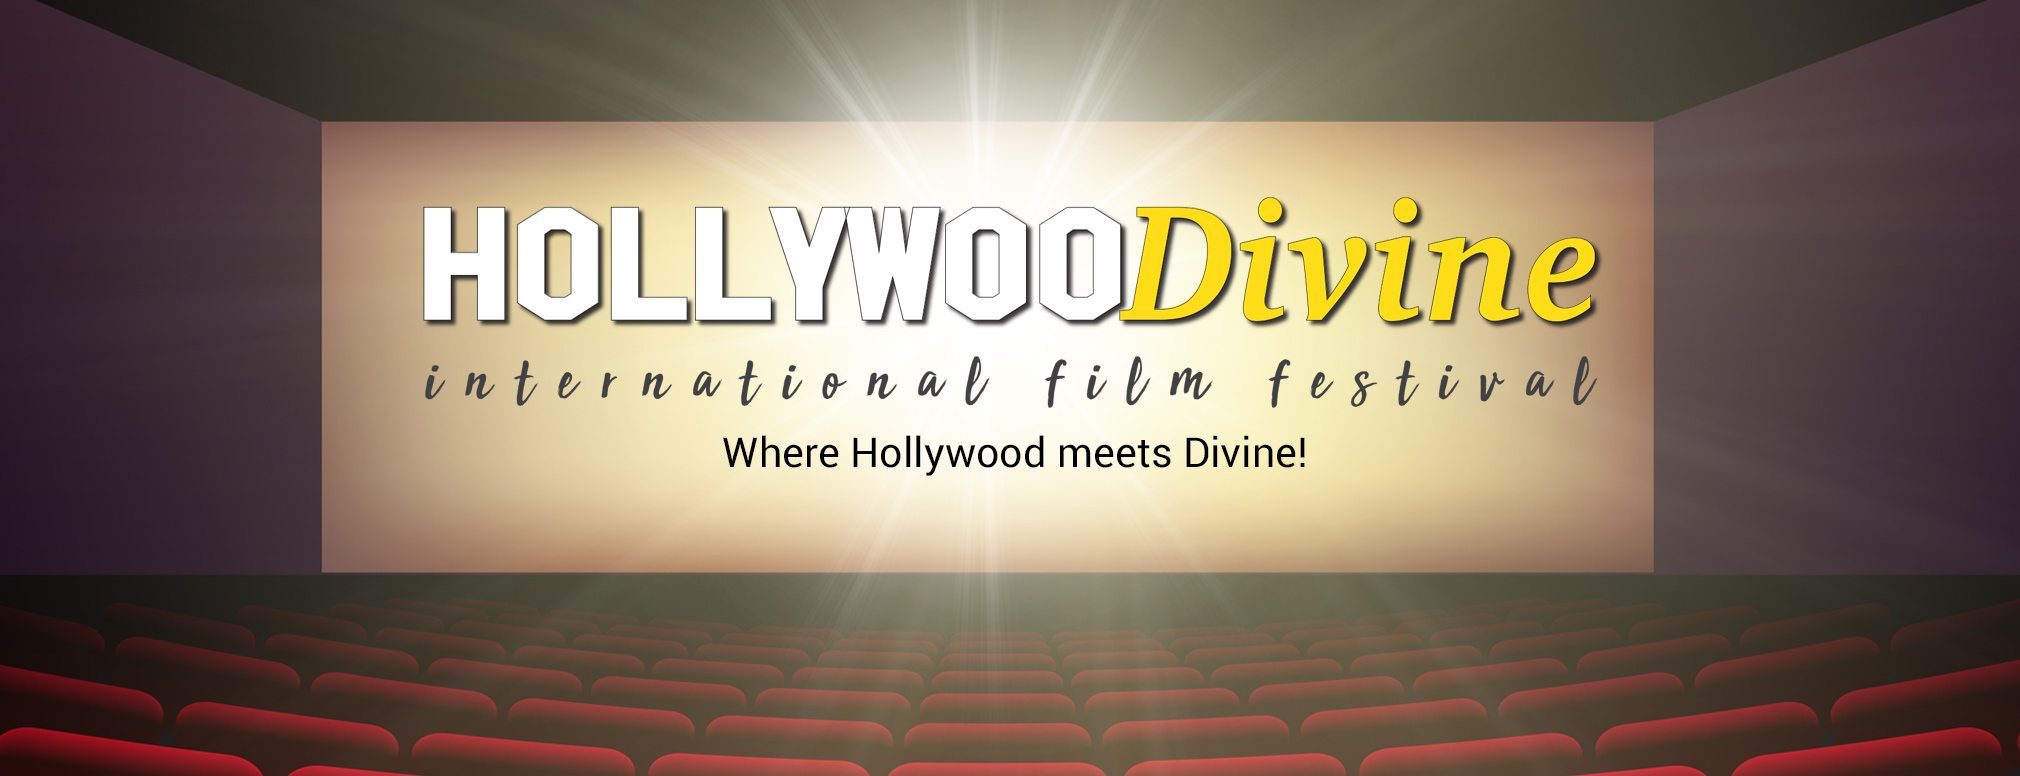 Hollywood Divine International Film Festival | Welcome